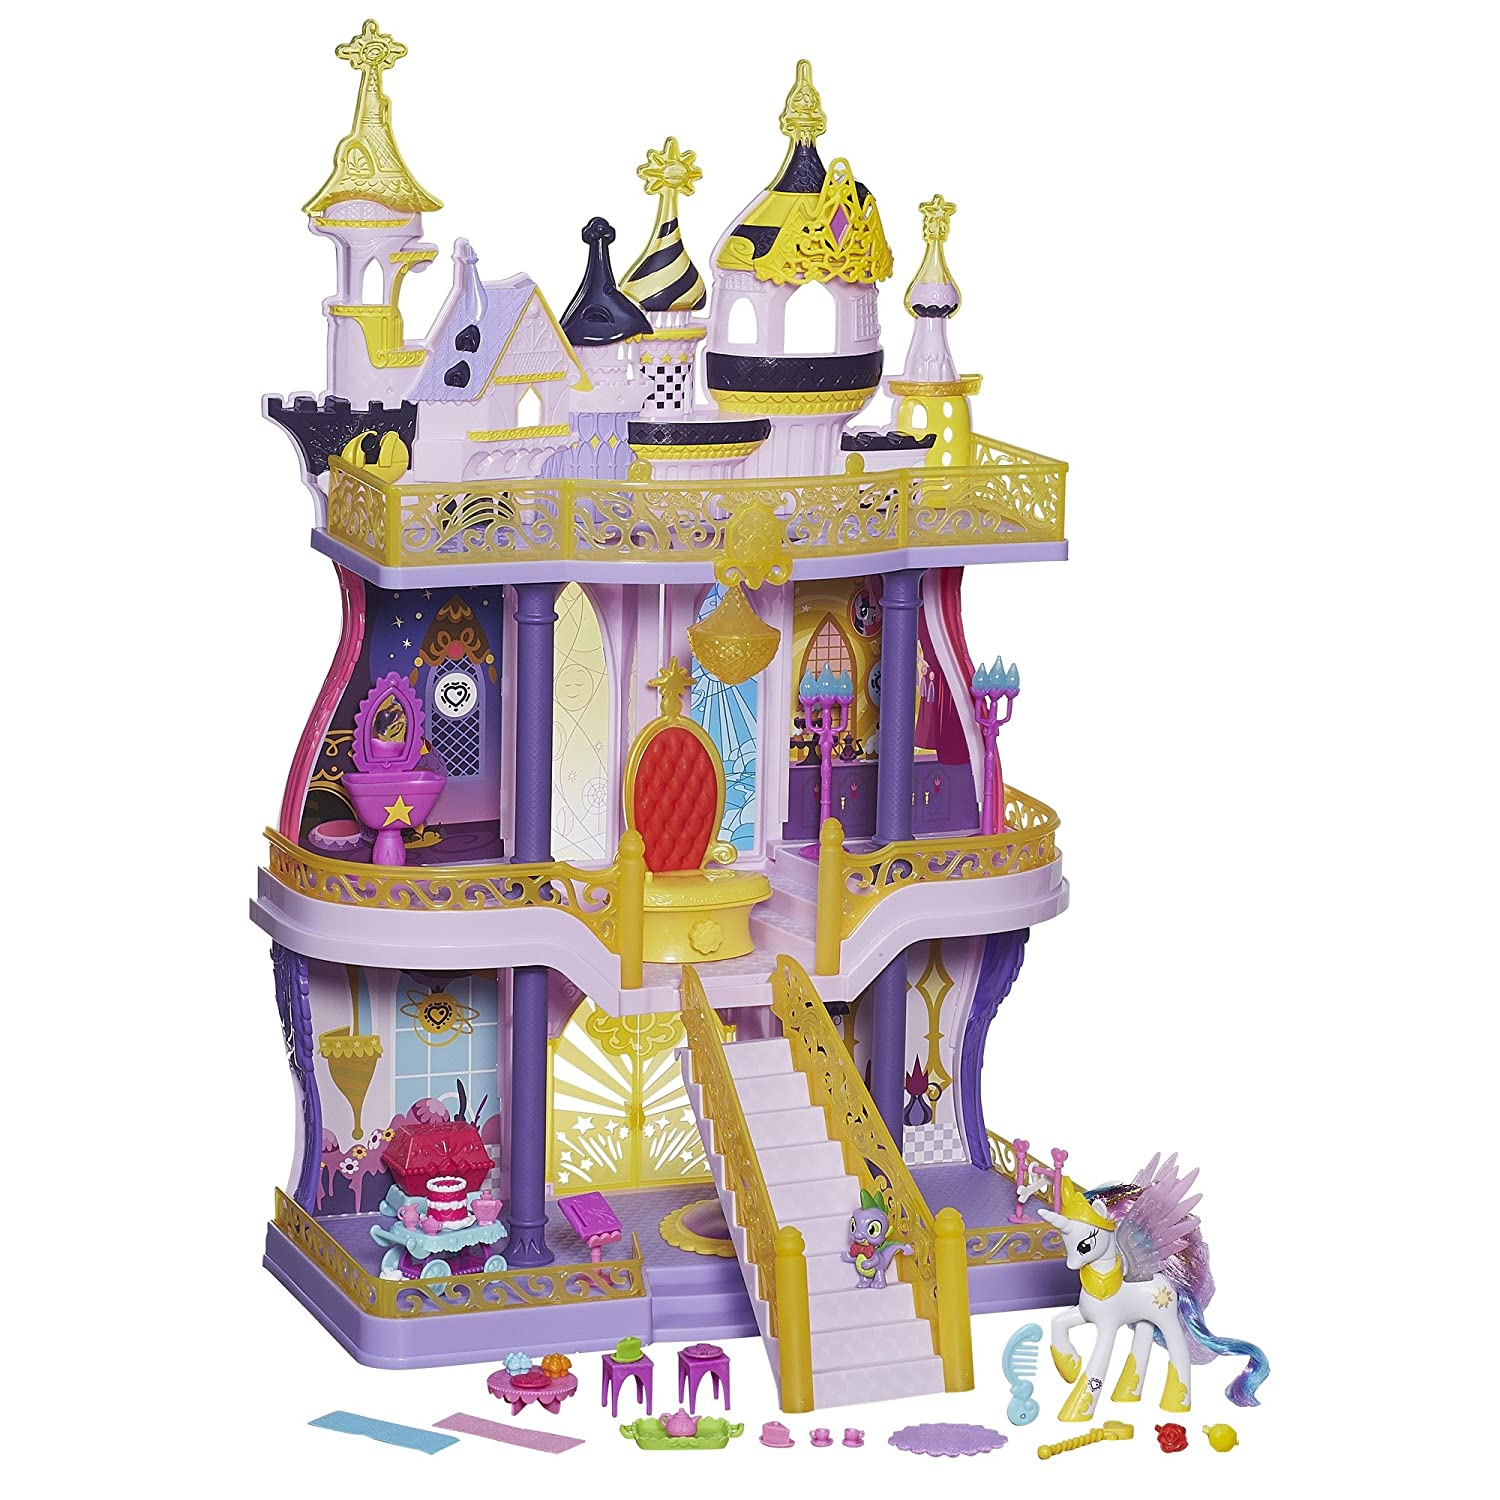 Princess Castle Playset with Pony and Dragon Gift for Girls